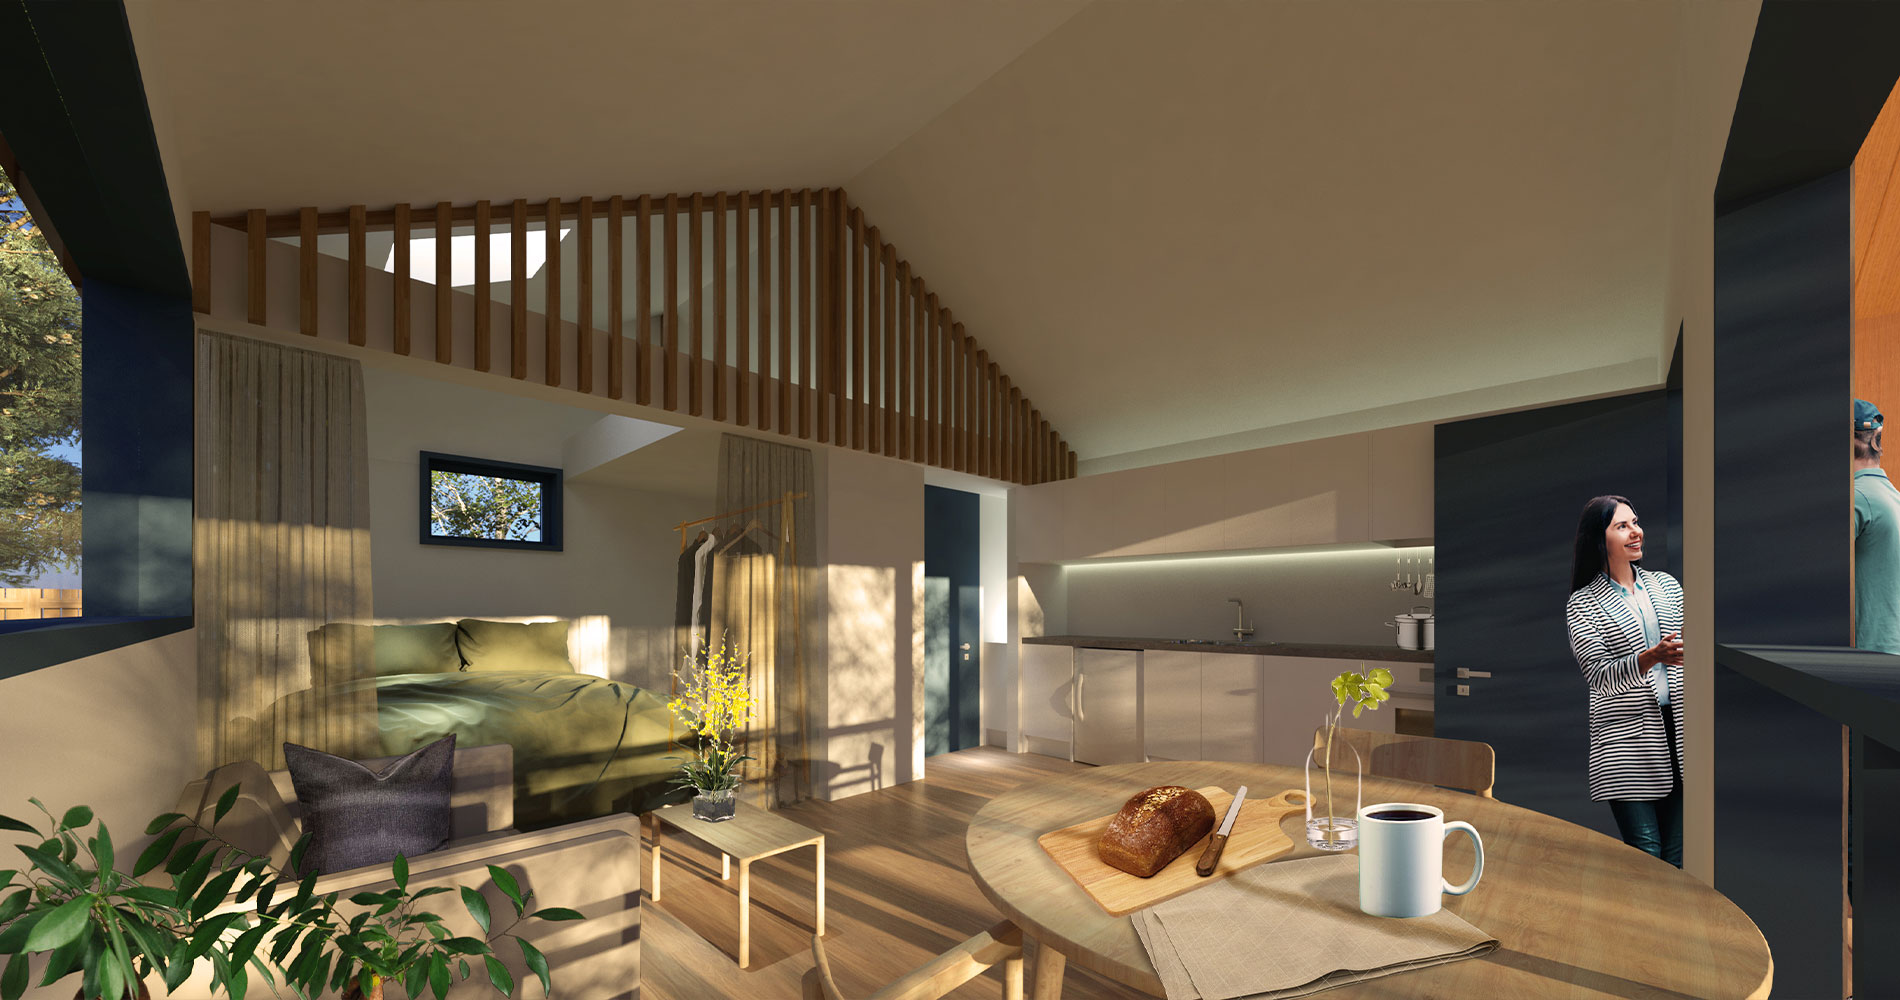 Nestd Homes - The Gable - one bedroom